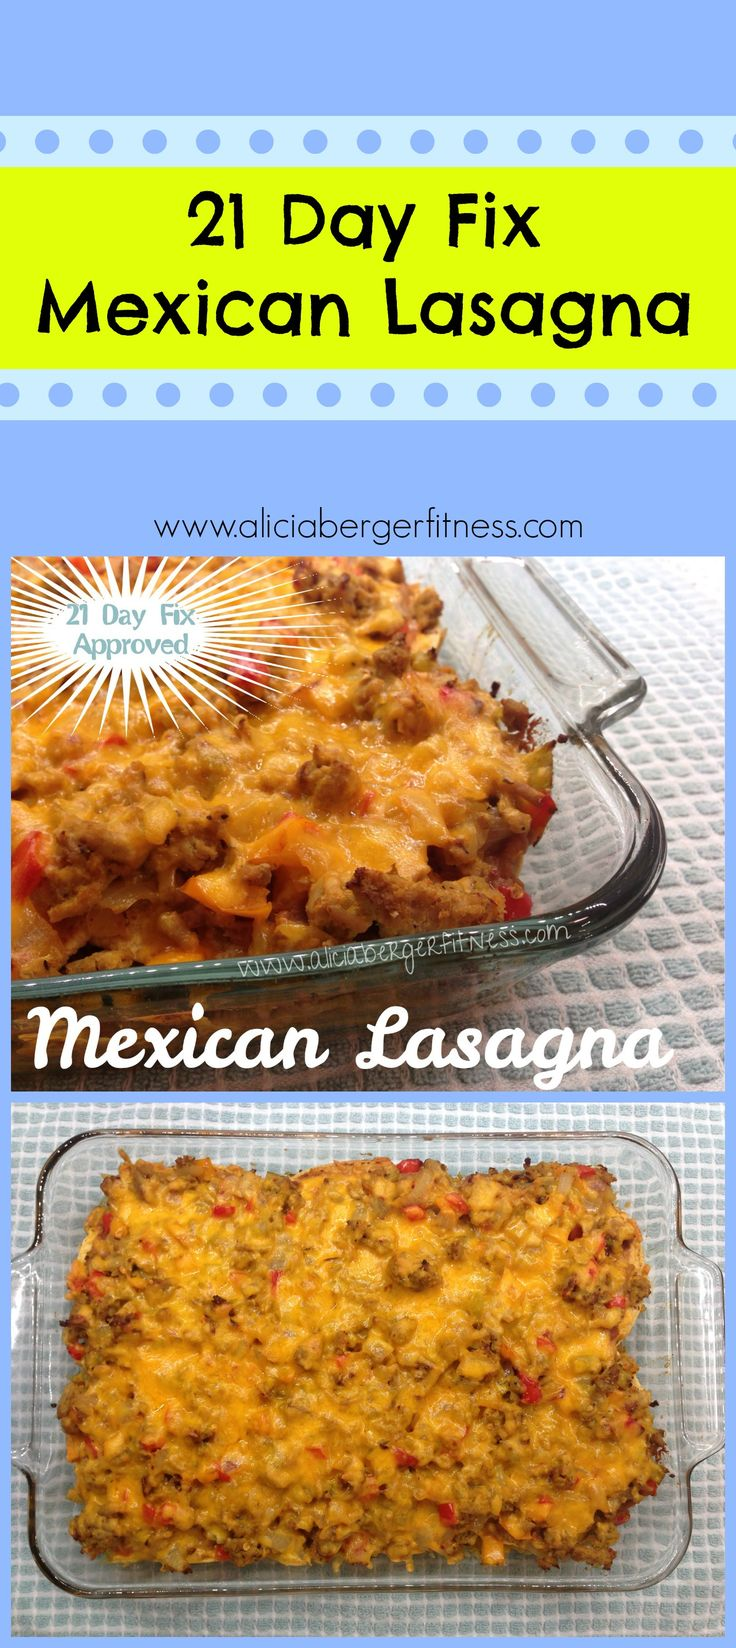 21 Day Fix Approved Mexican Lasagna!